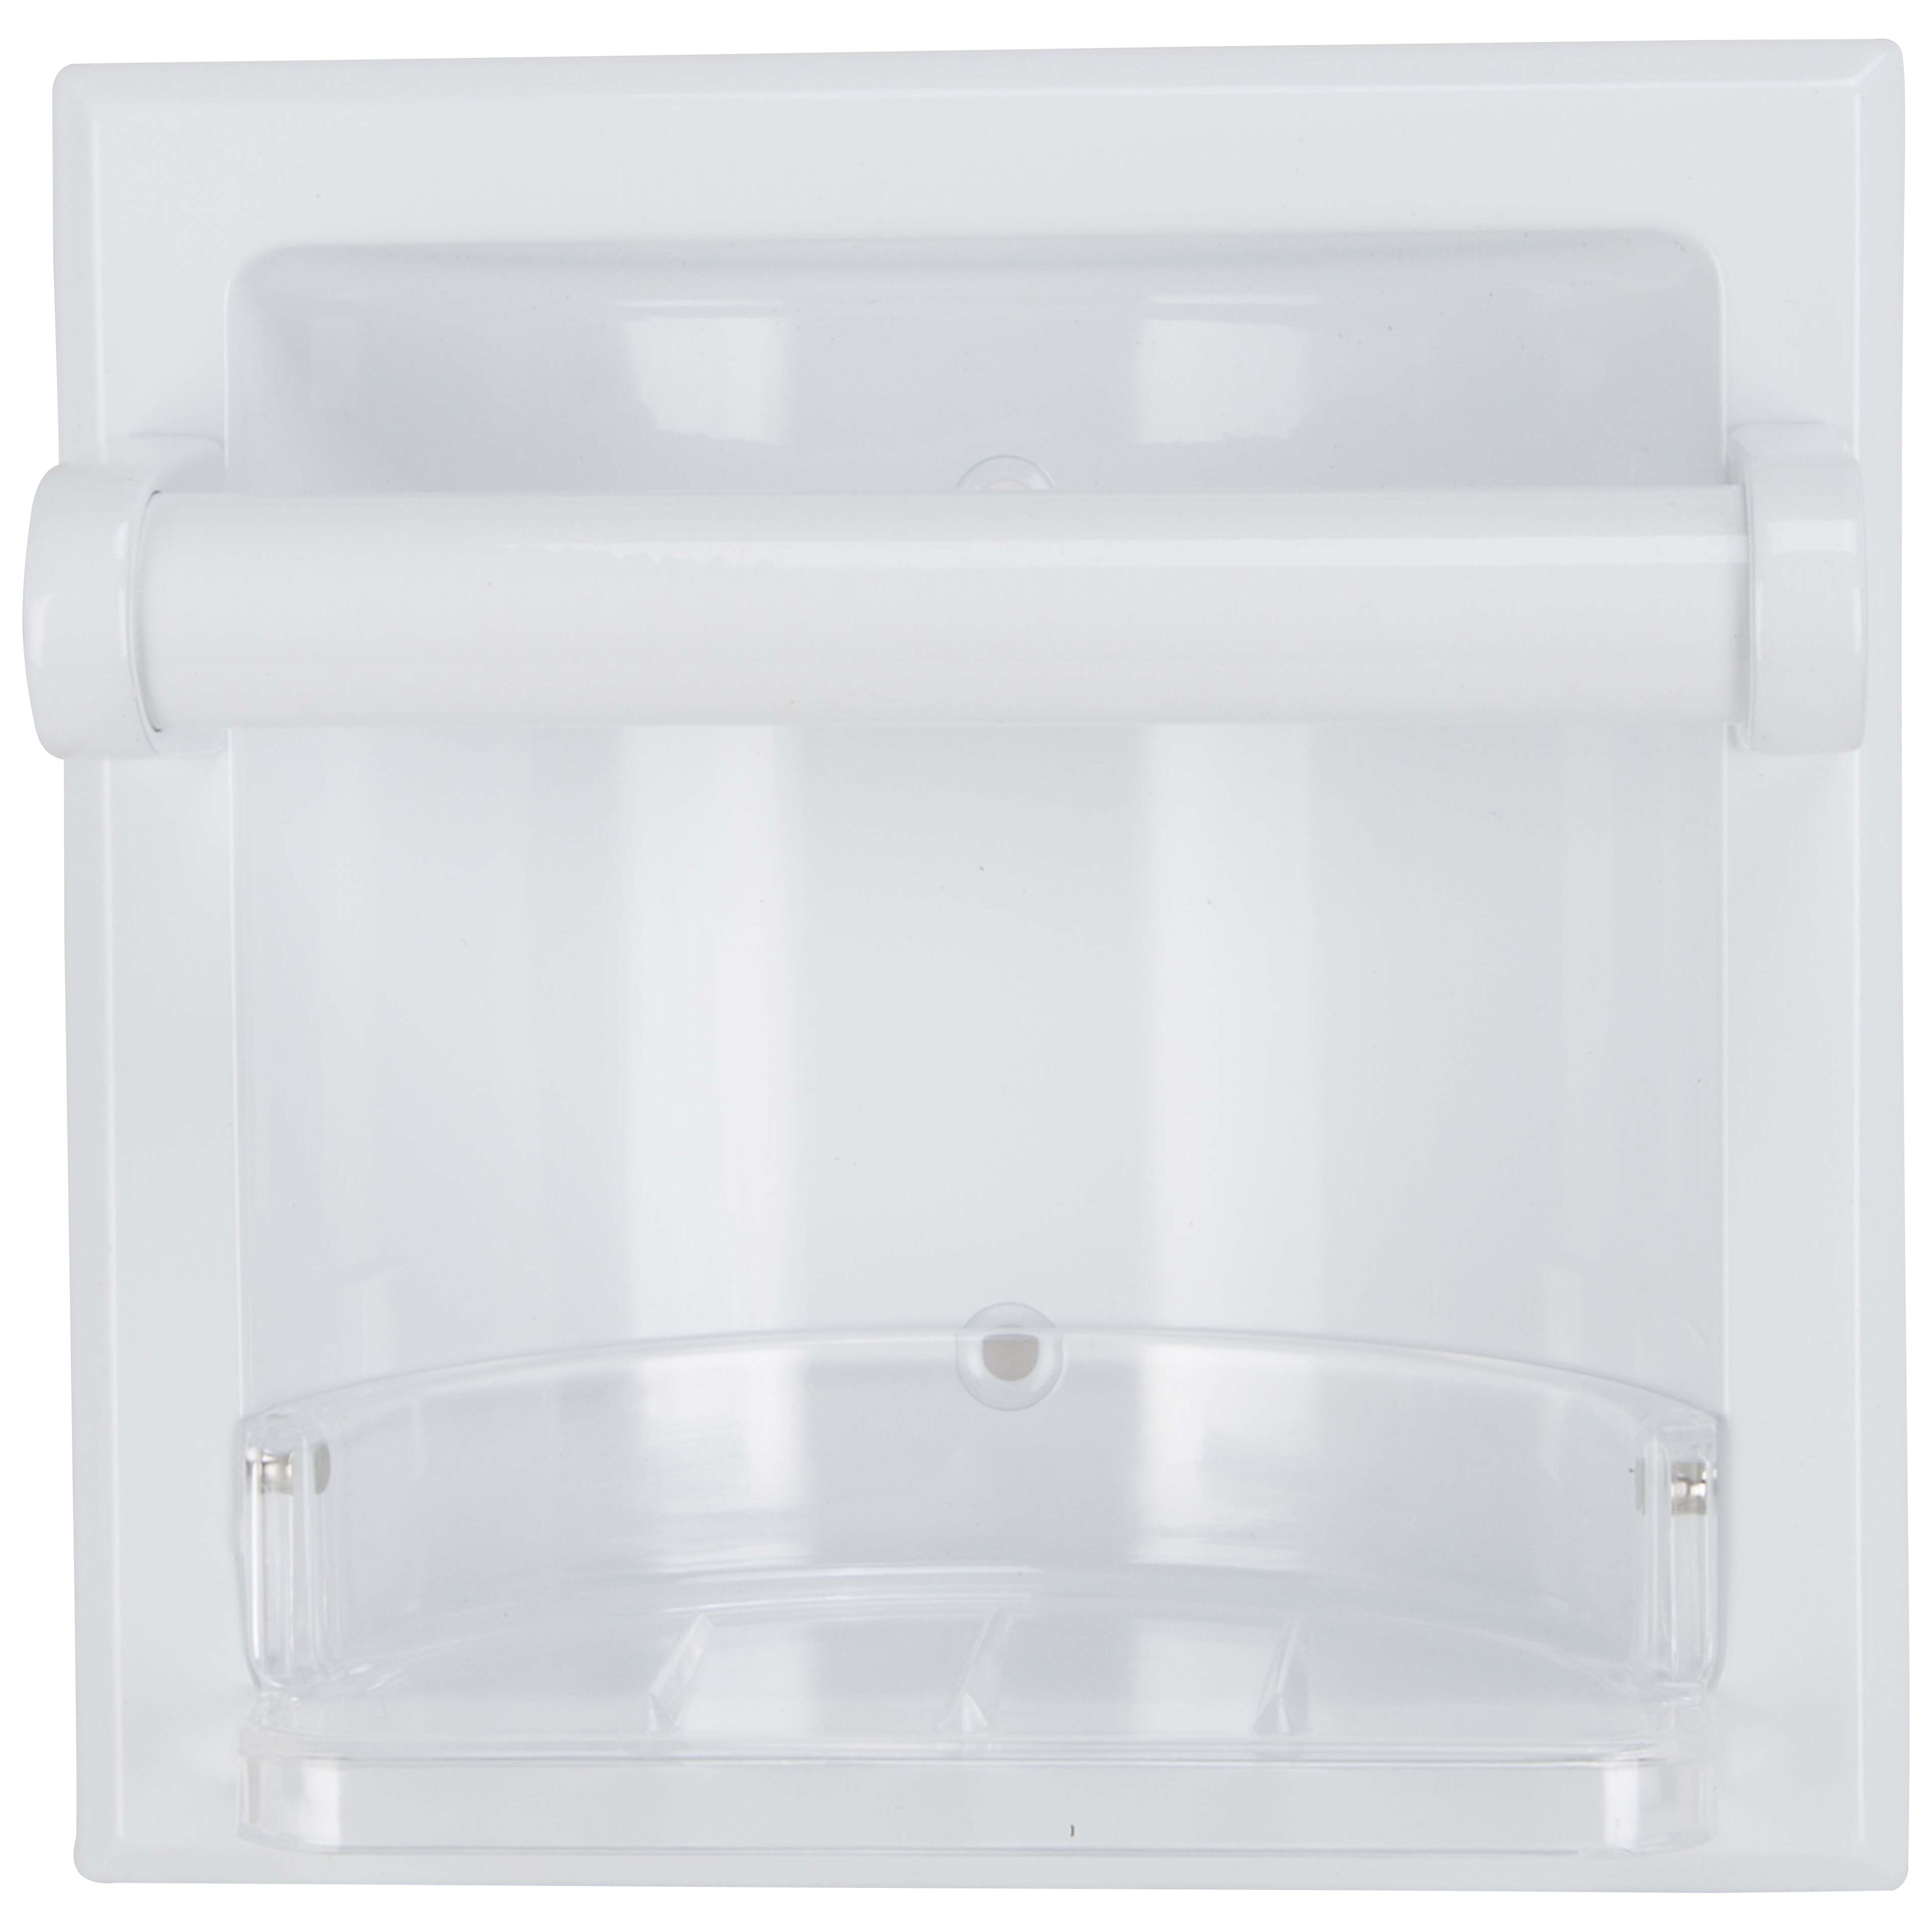 Picture of Boston Harbor L770H-51-07 Soap Dish, Recessed Mounting, White